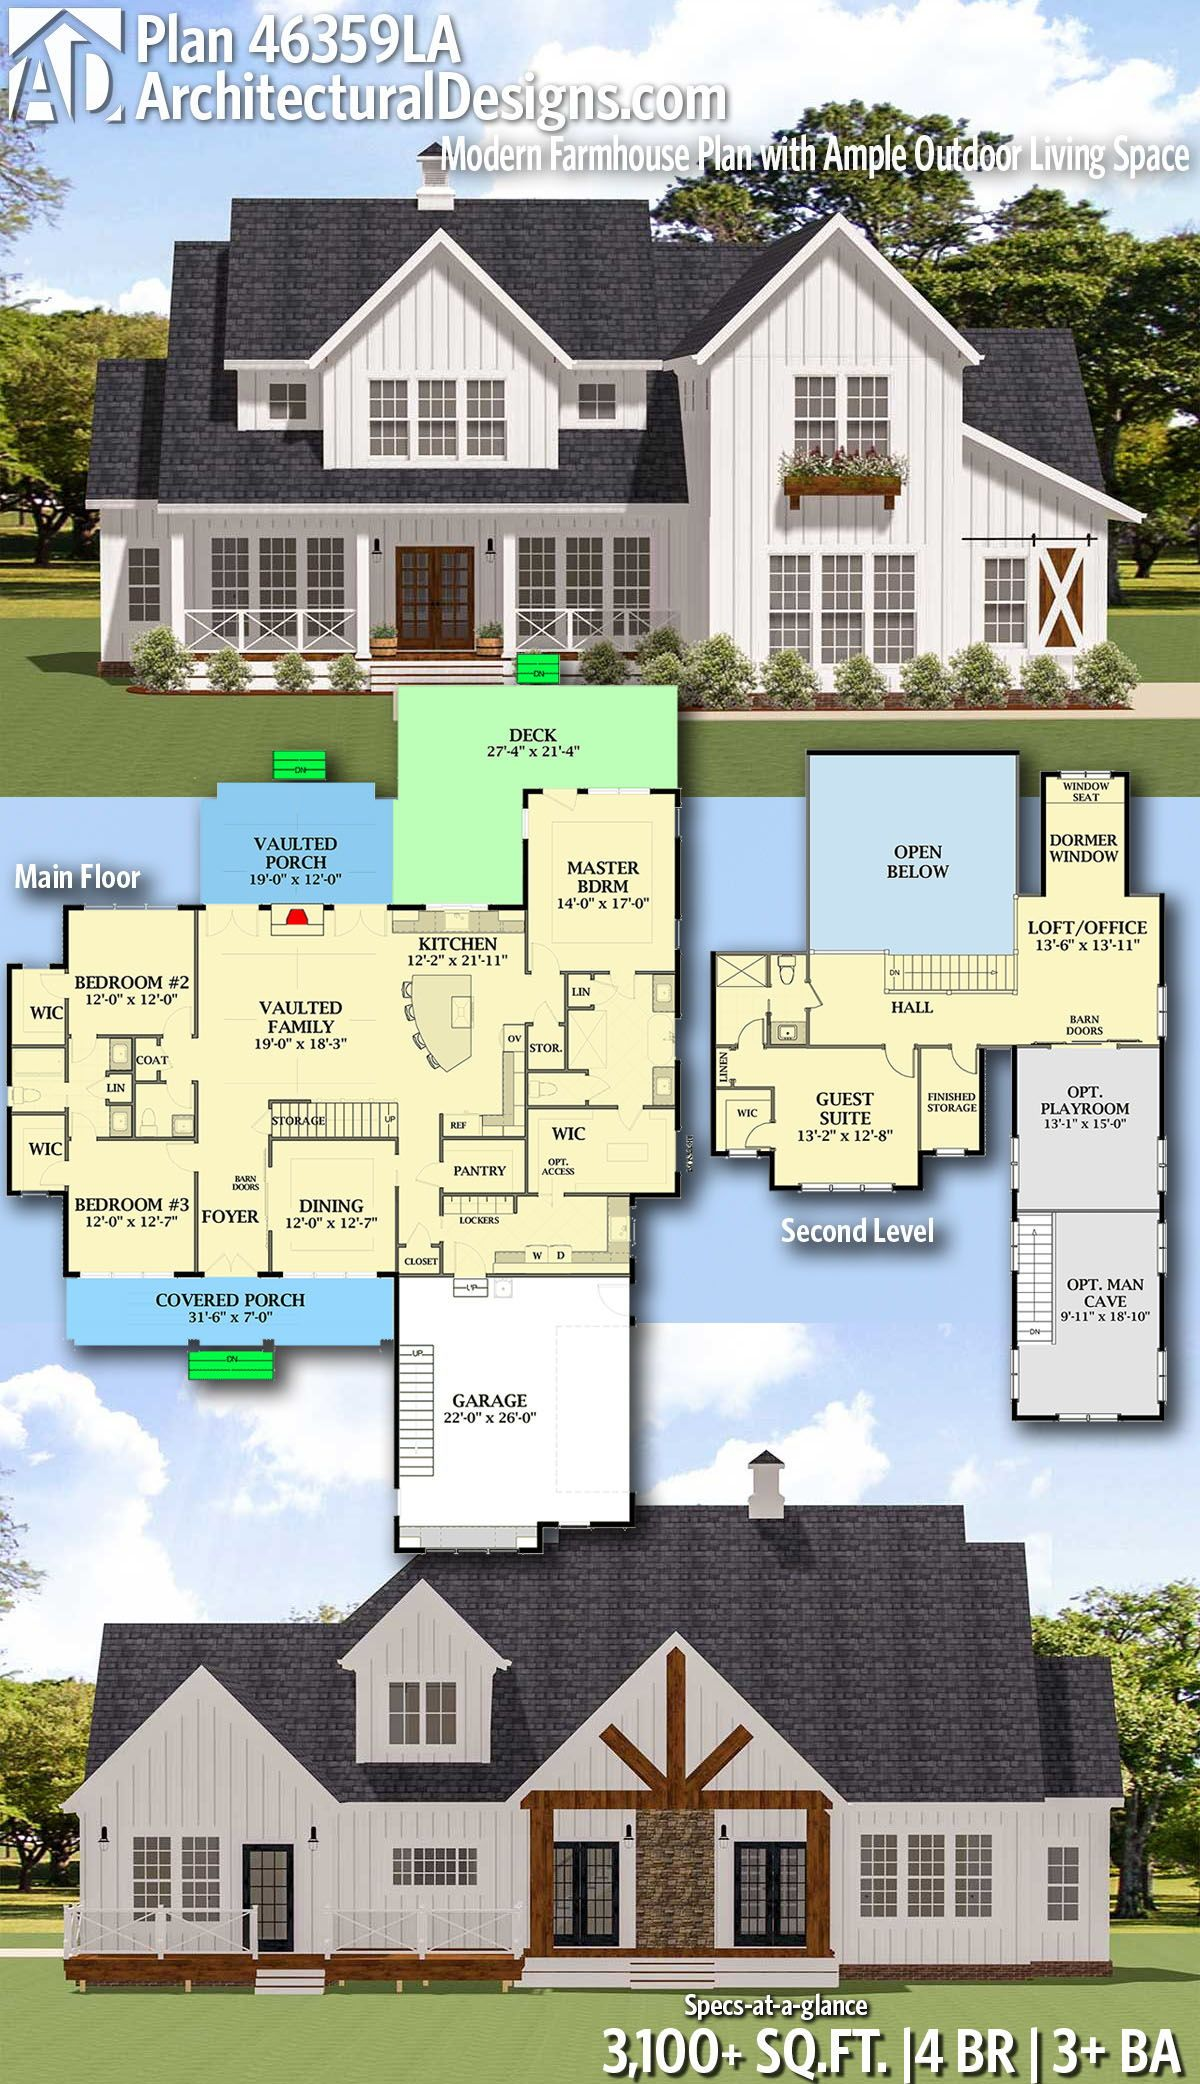 Plan 46359la Modern Farmhouse Plan With Ample Outdoor Living Space Farmhouse Plans Modern Farmhouse Plans House Plans Farmhouse